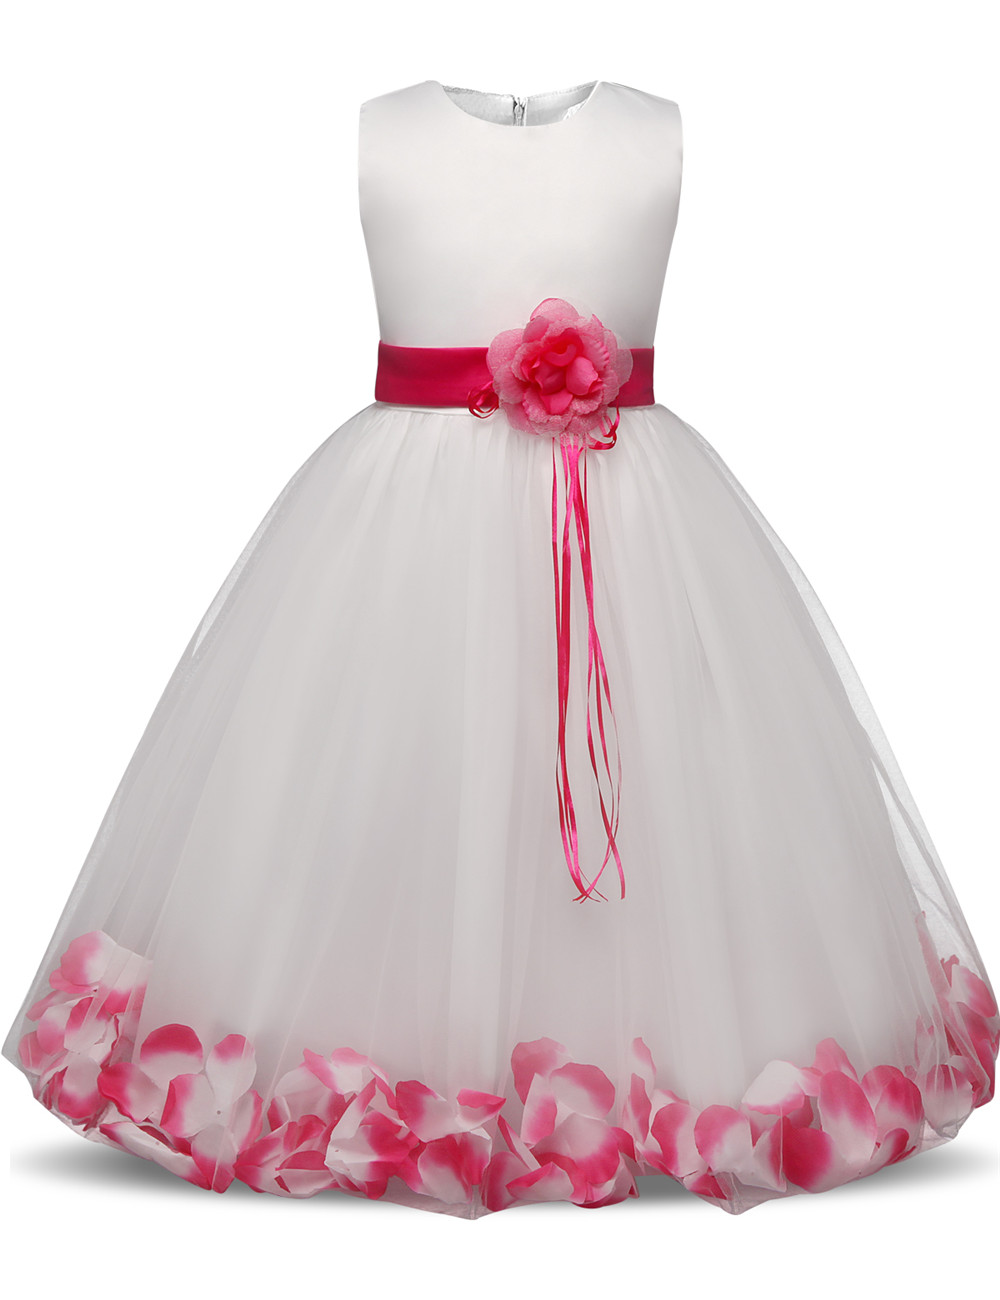 Flower Children's Dresses Girls Kids Clothes For Wedding 8 10 Years Birthday Dress Little Girl Evening Party Dress Baby Costume baby girls party dress 2017 wedding sleeveless teens girl dresses kids clothes children dress for 5 6 7 8 9 10 11 12 13 14 years